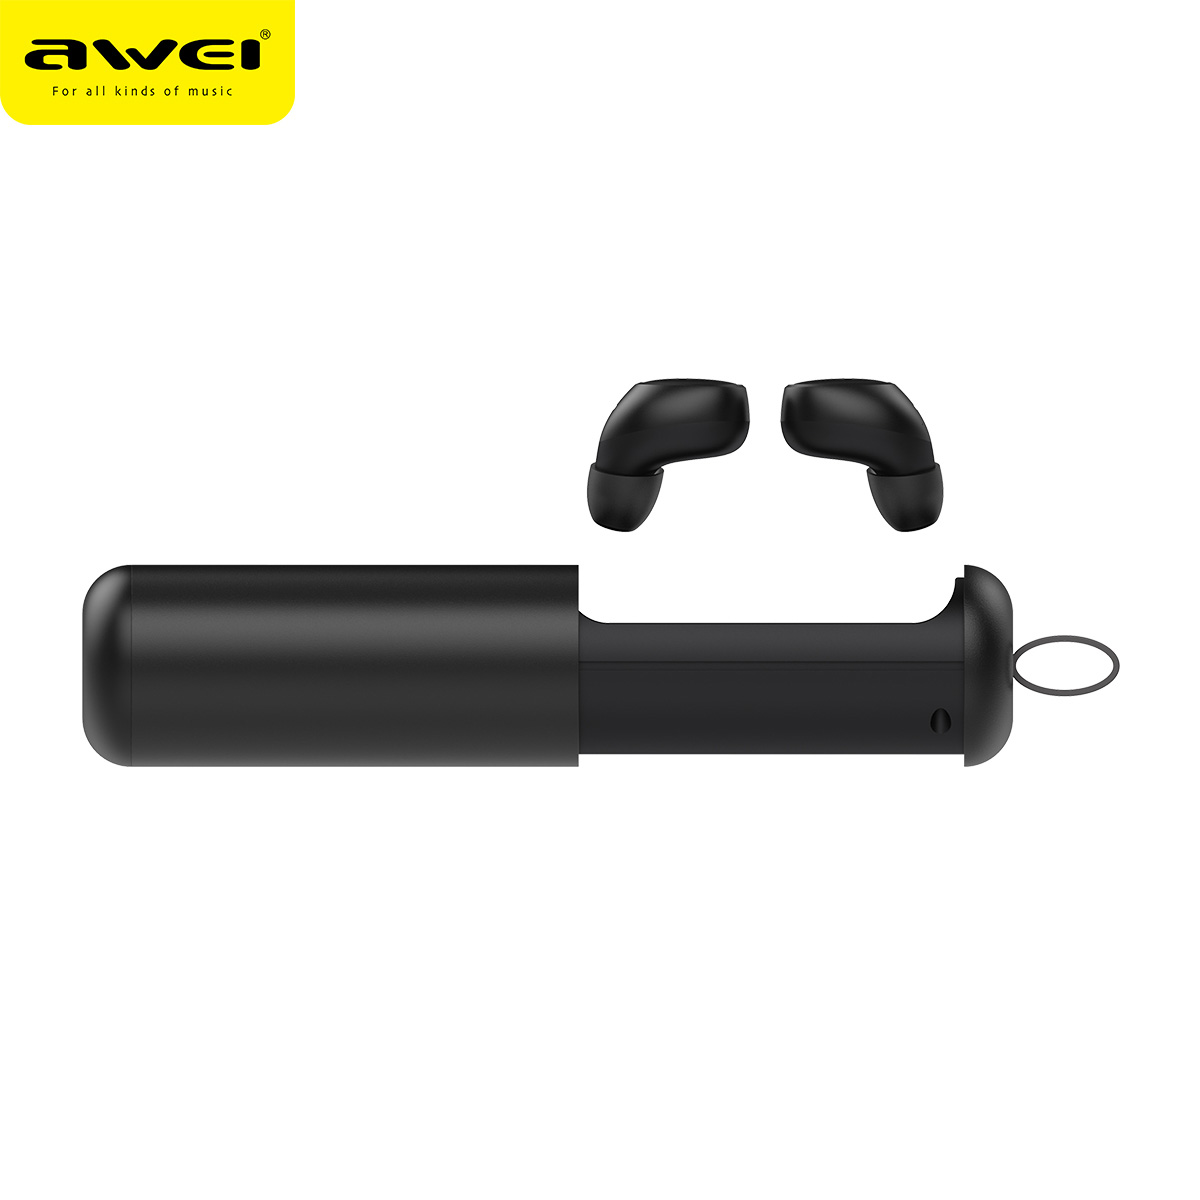 AWEI T5 TWS business Bluetooth earphones wireless HD stereo headphones headset charge box with microphone Bluetooth V5.0 awei t8 tws business bluetooth earphones wireless 3d stereo earphones headset power bank with microphone handsfree calls